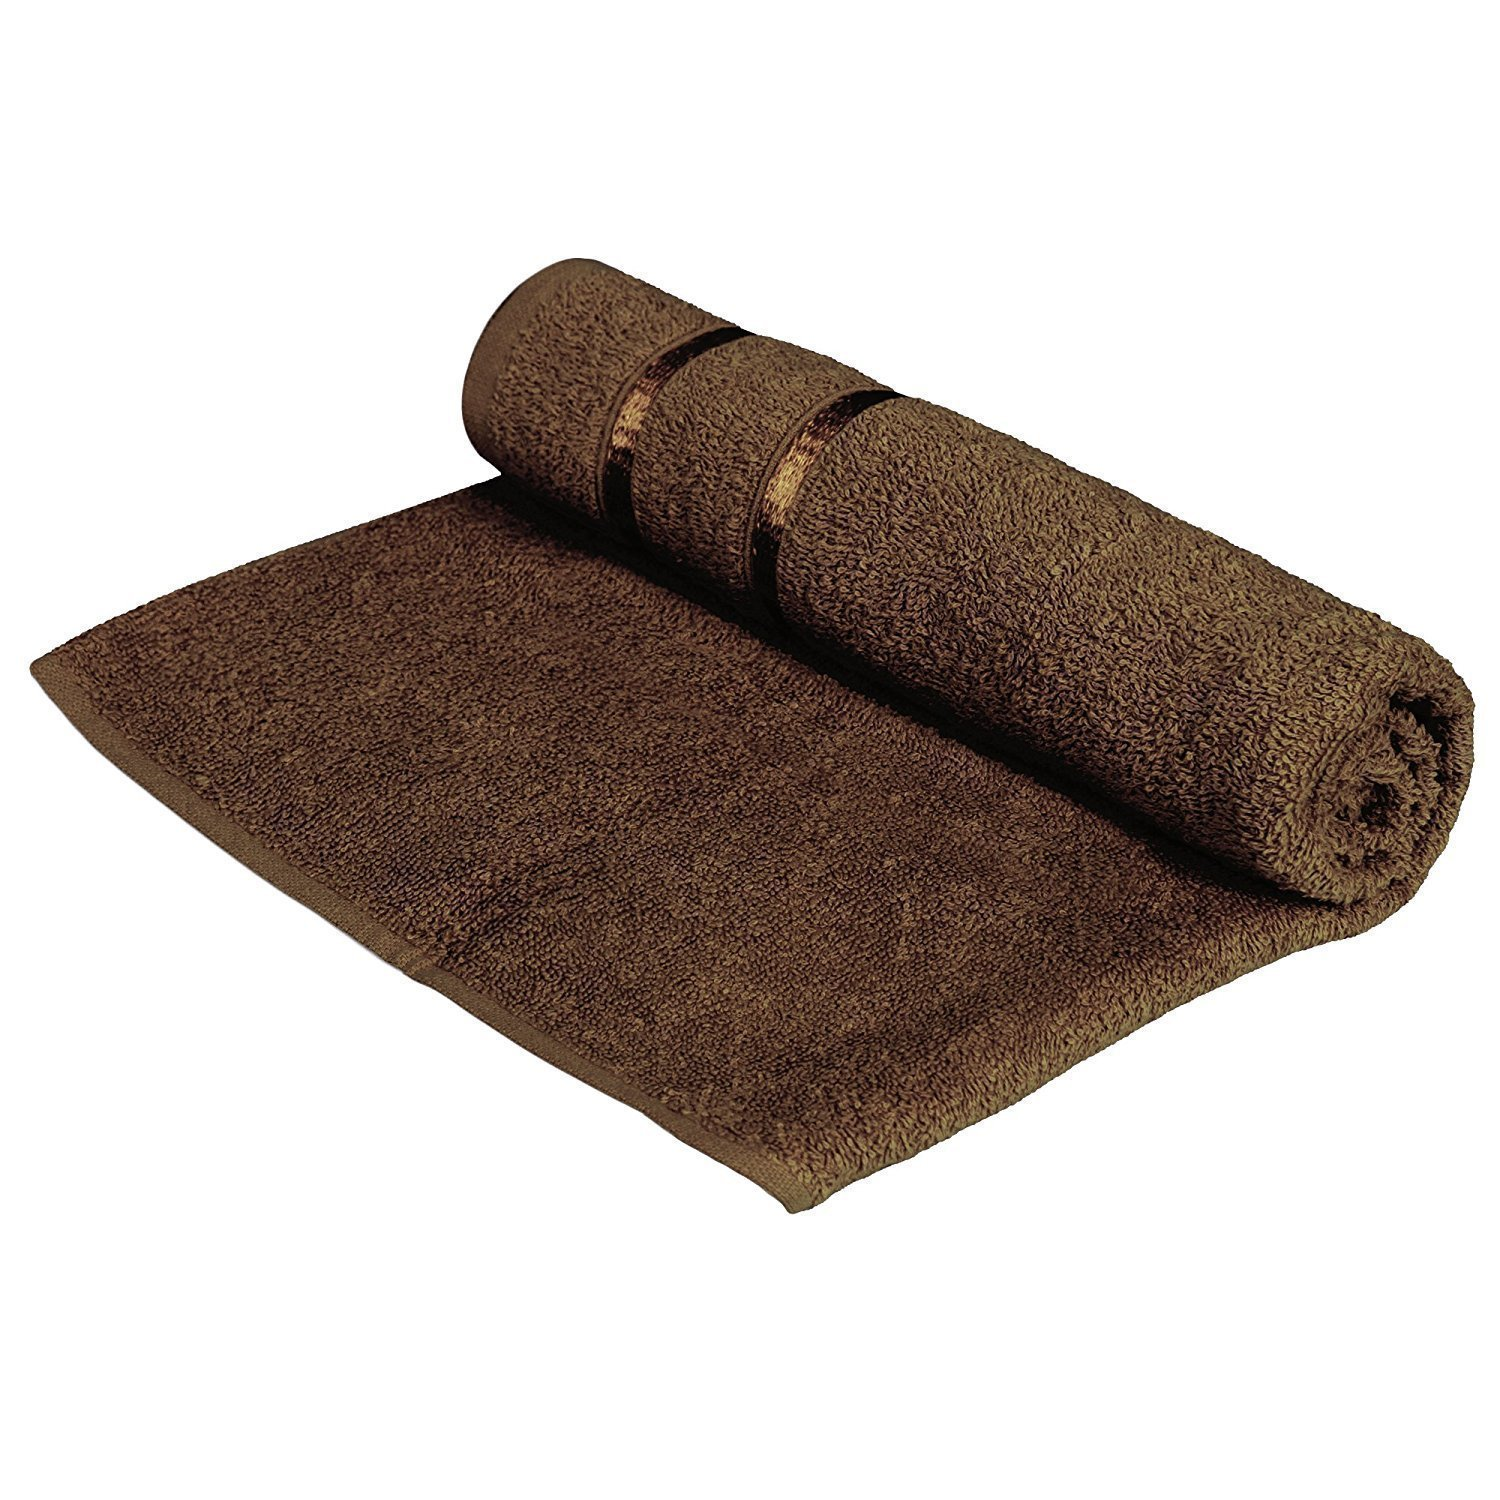 Cotton Bath Towels for After Bath use or Women Hair Wrap Towel or Multi Purpose use Khandekar with device of K